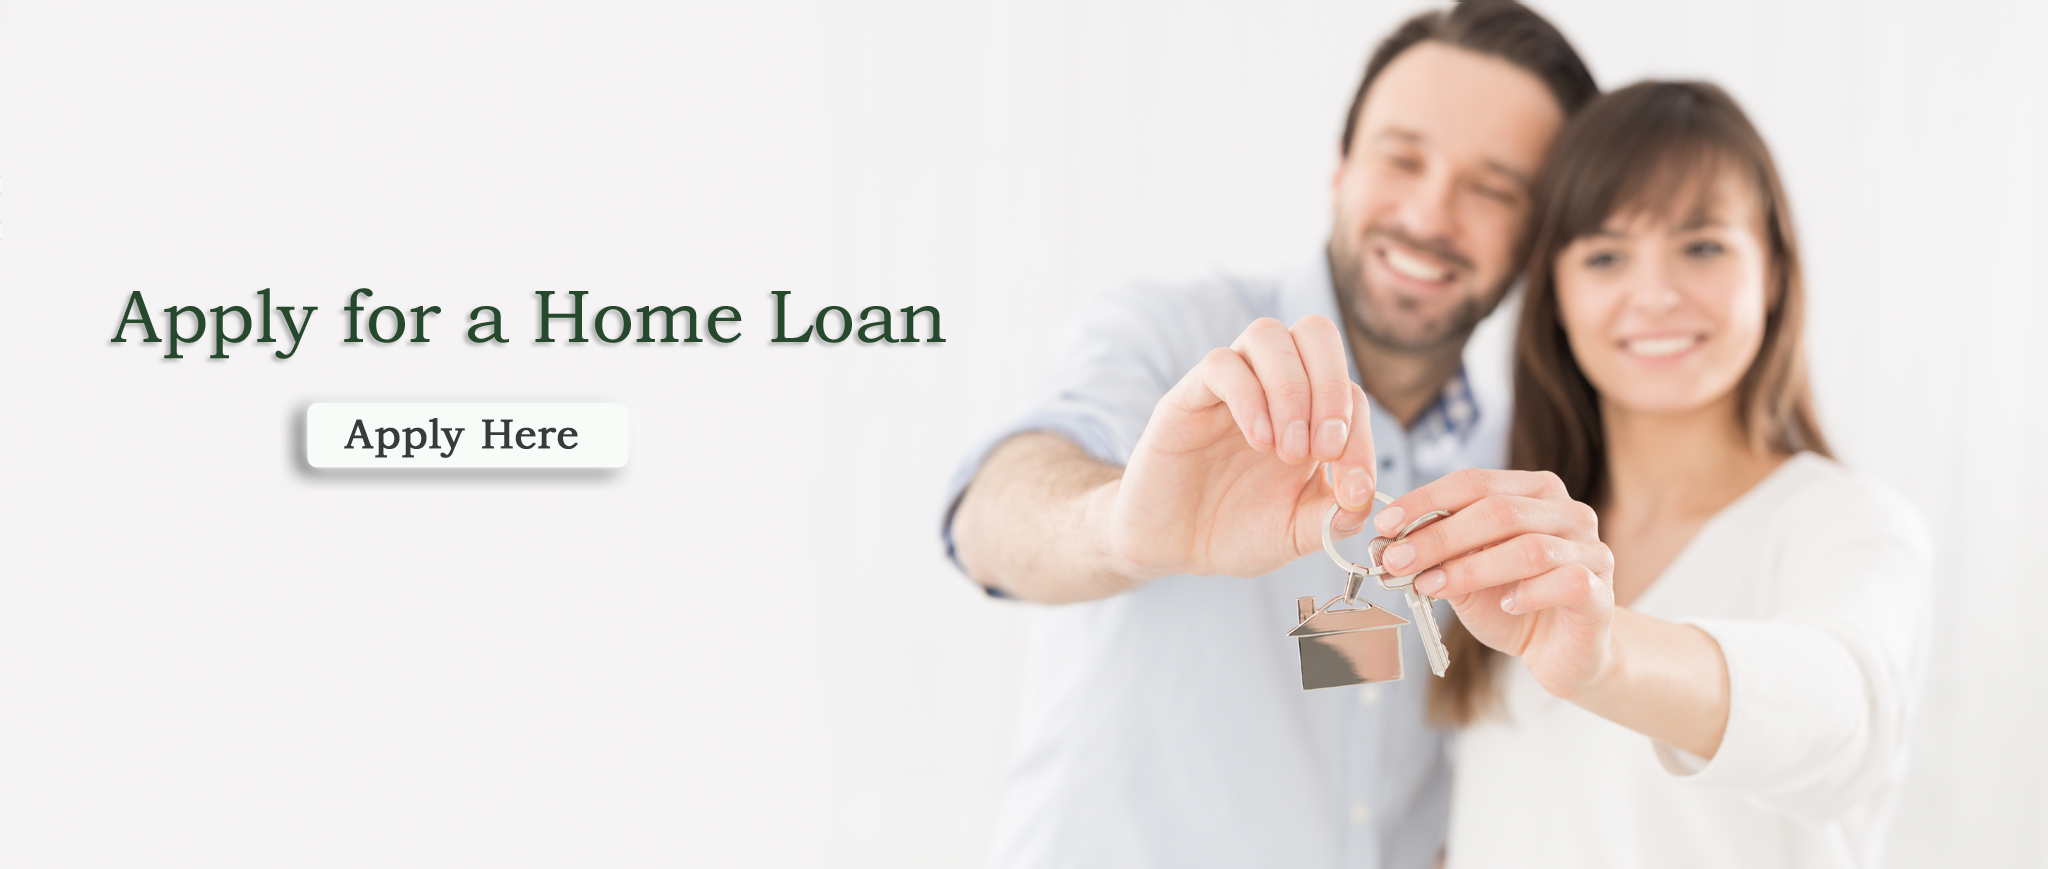 image link to loan application